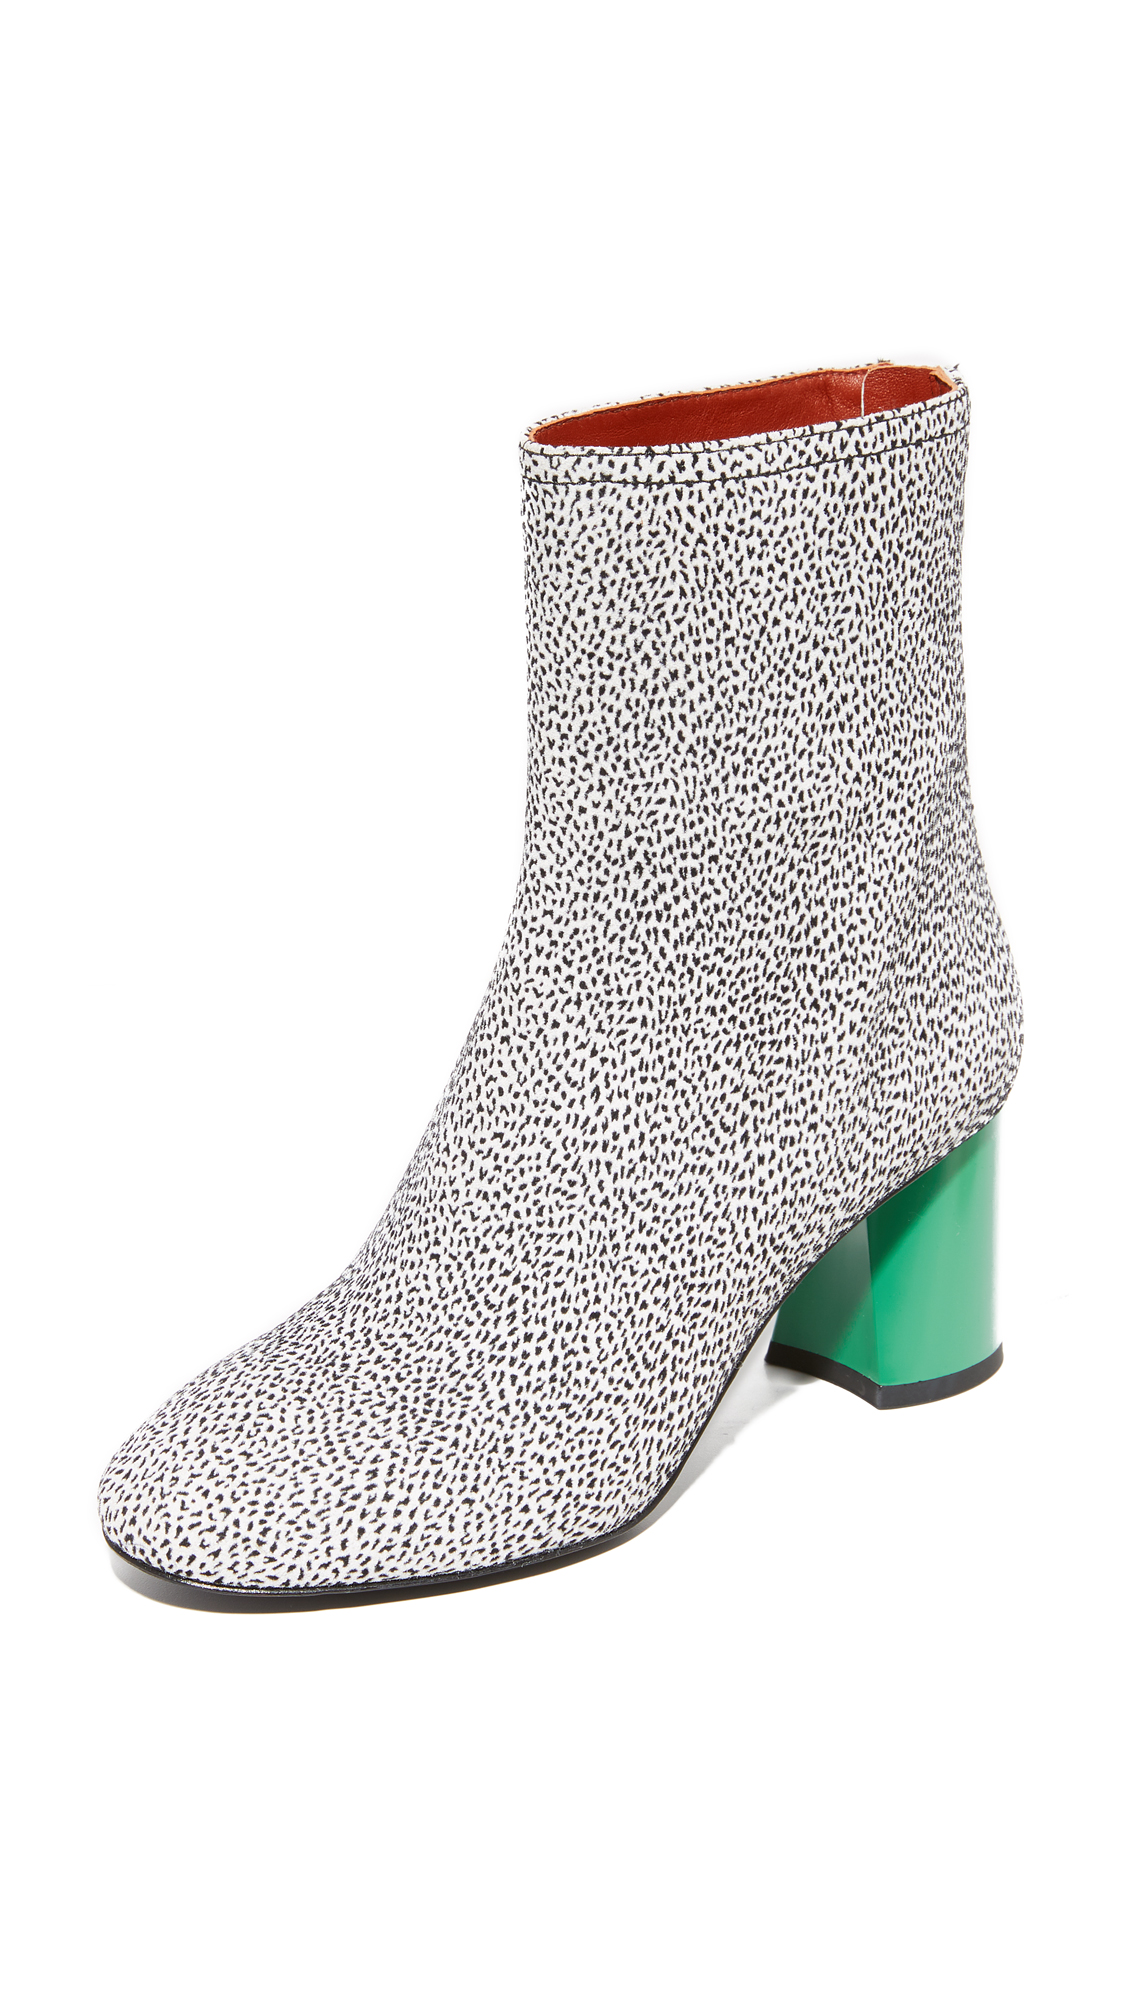 3.1 Phillip Lim Drum Contrast Heel Booties - White Cheetah